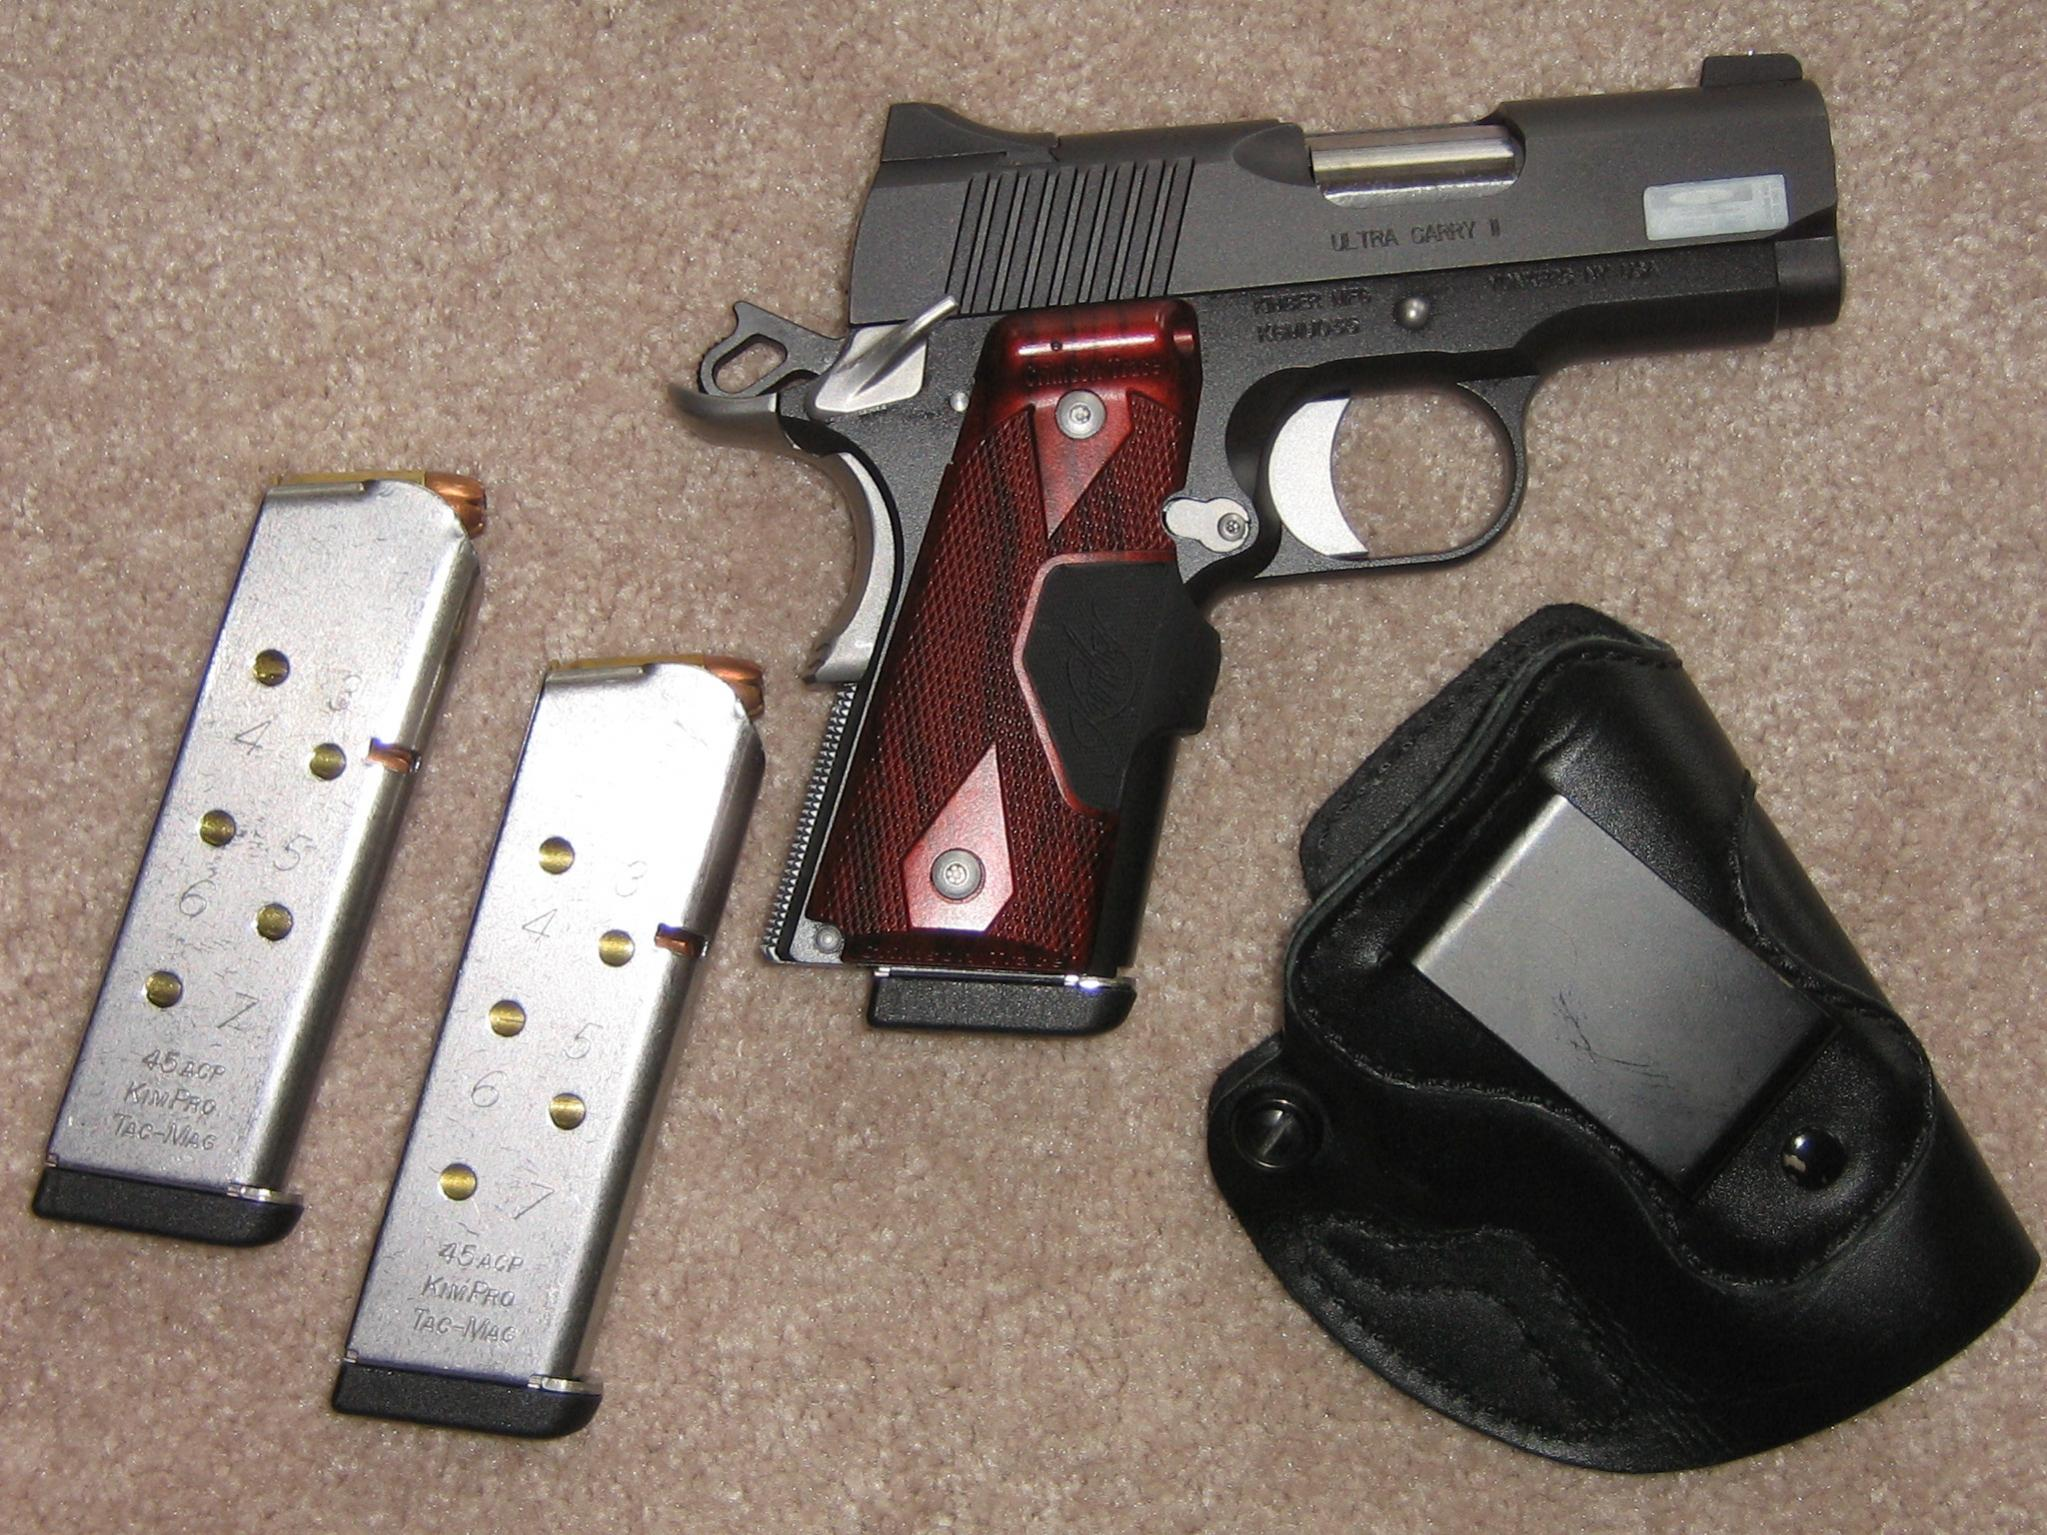 Looking for Baby Glock in a 1911-img_0837_1.jpg